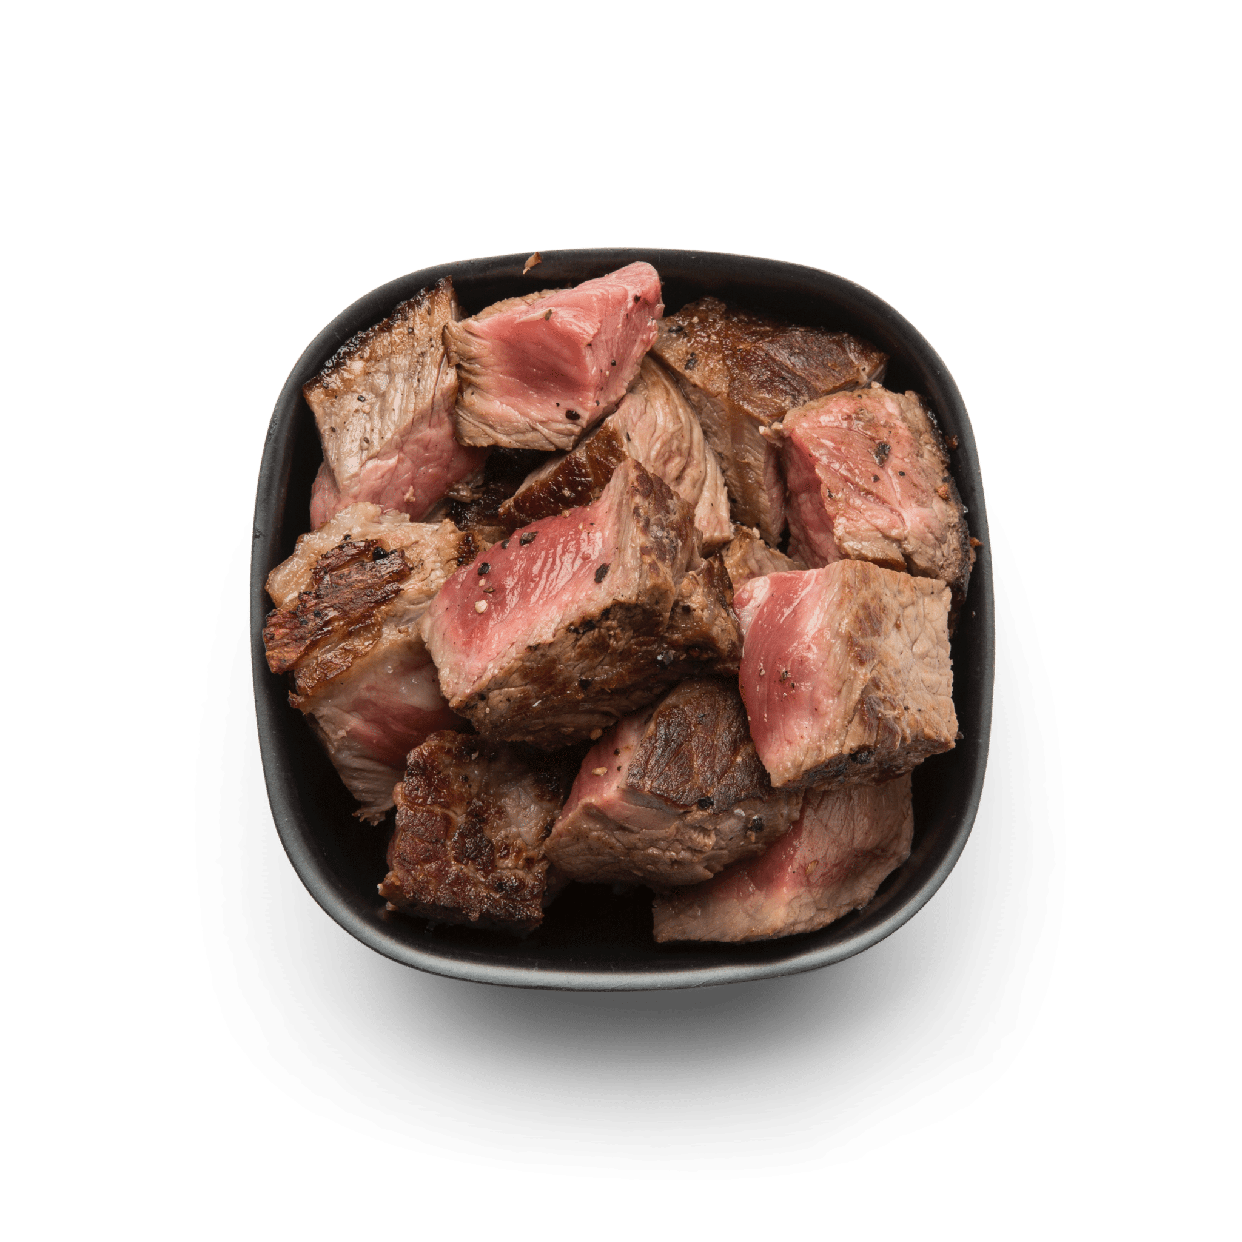 seasoned grilled steak